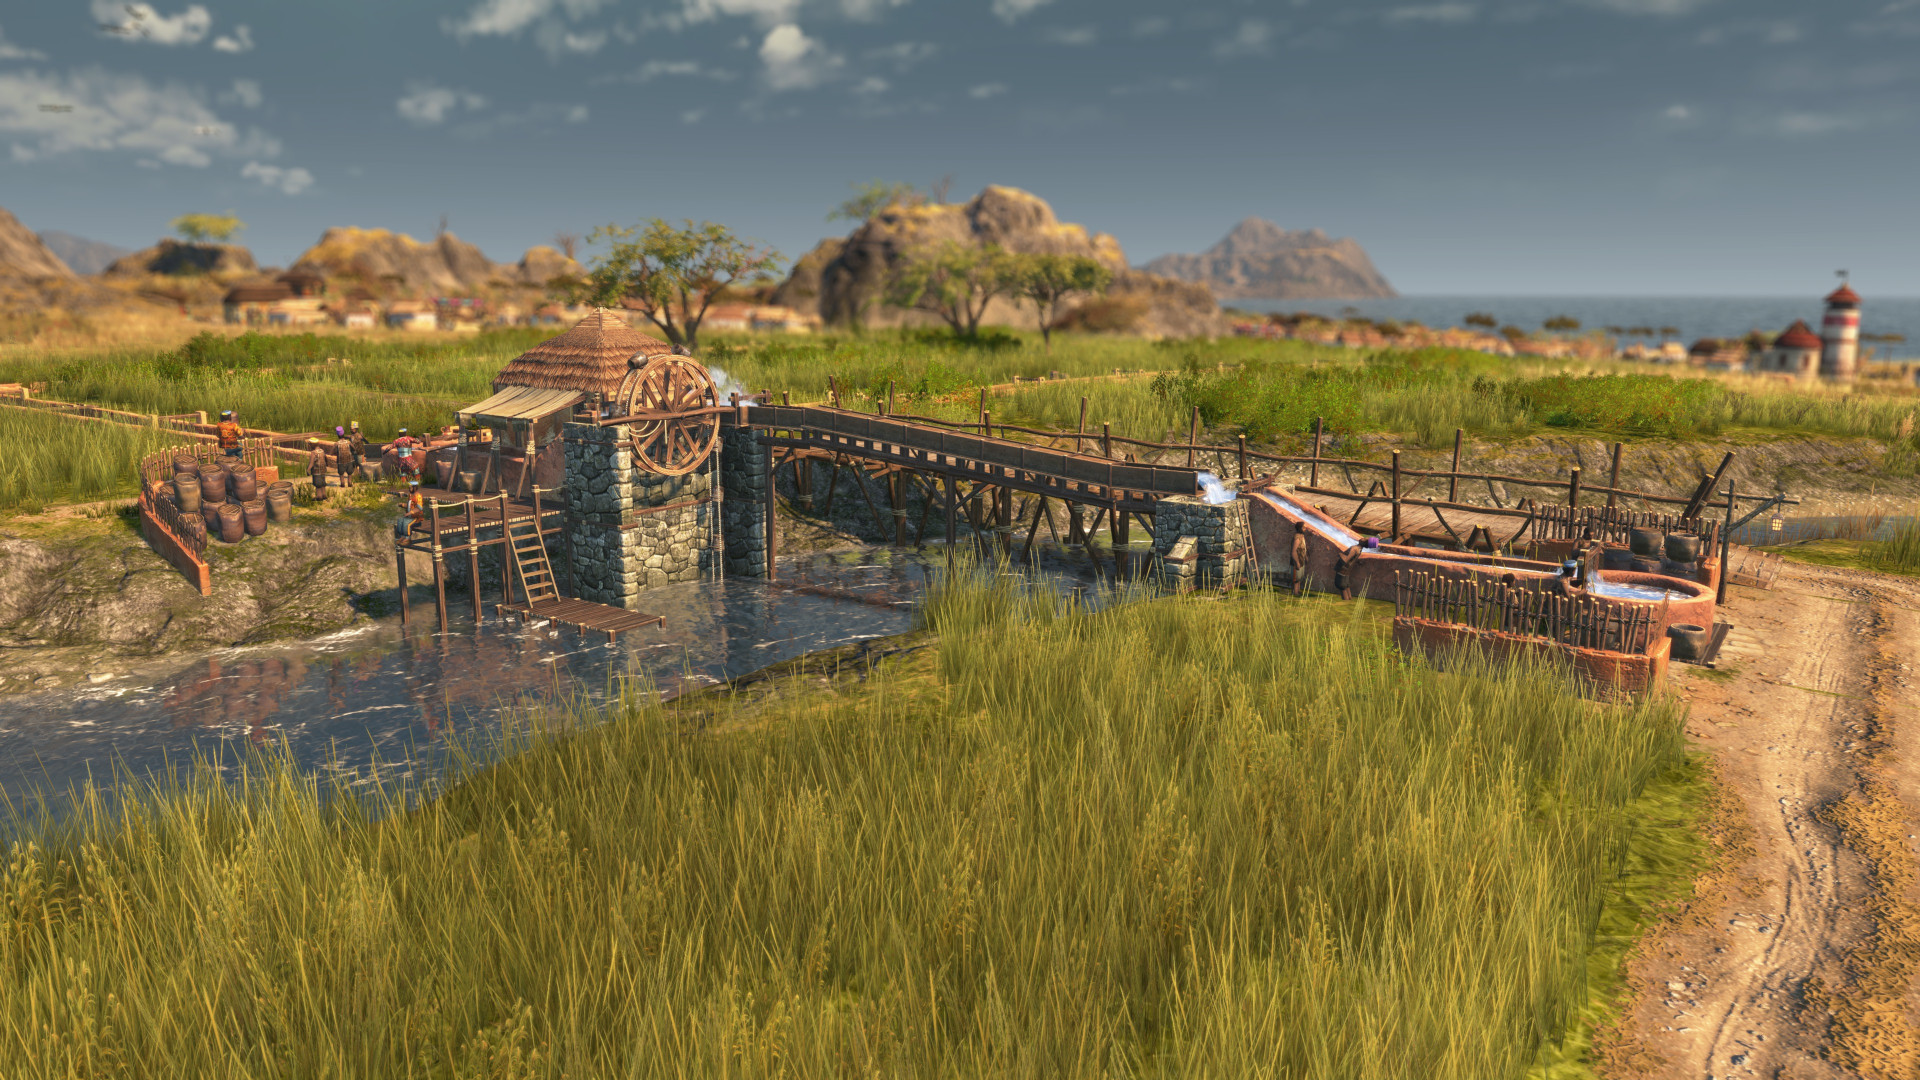 Anno1800_Land_of_Lions_Canal_02.jpg